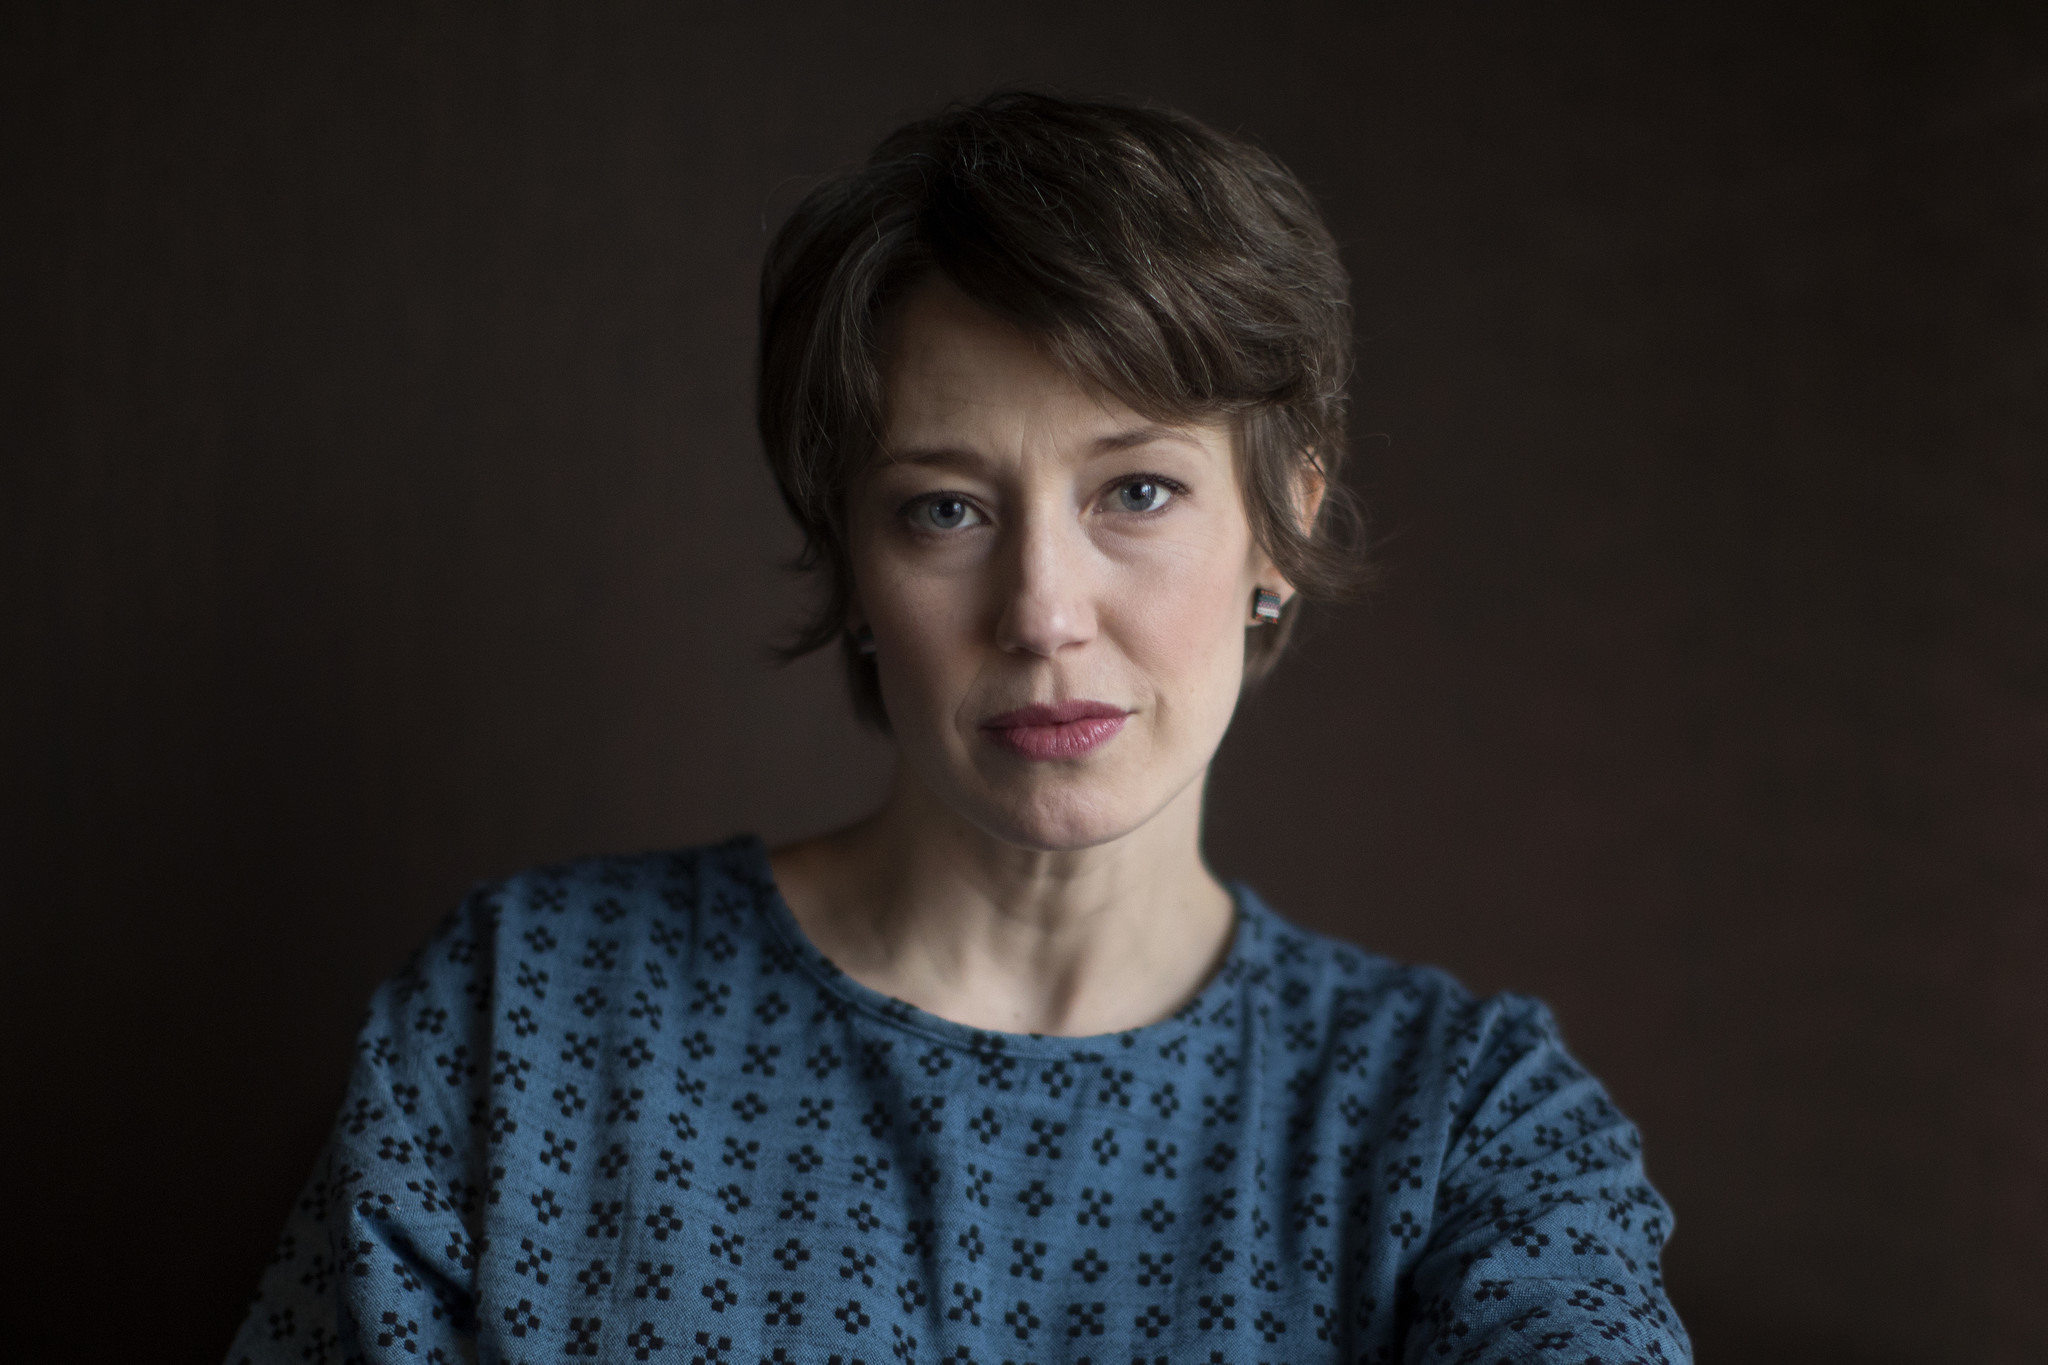 Carrie Coon nude (46 foto and video), Pussy, Sideboobs, Twitter, cleavage 2020